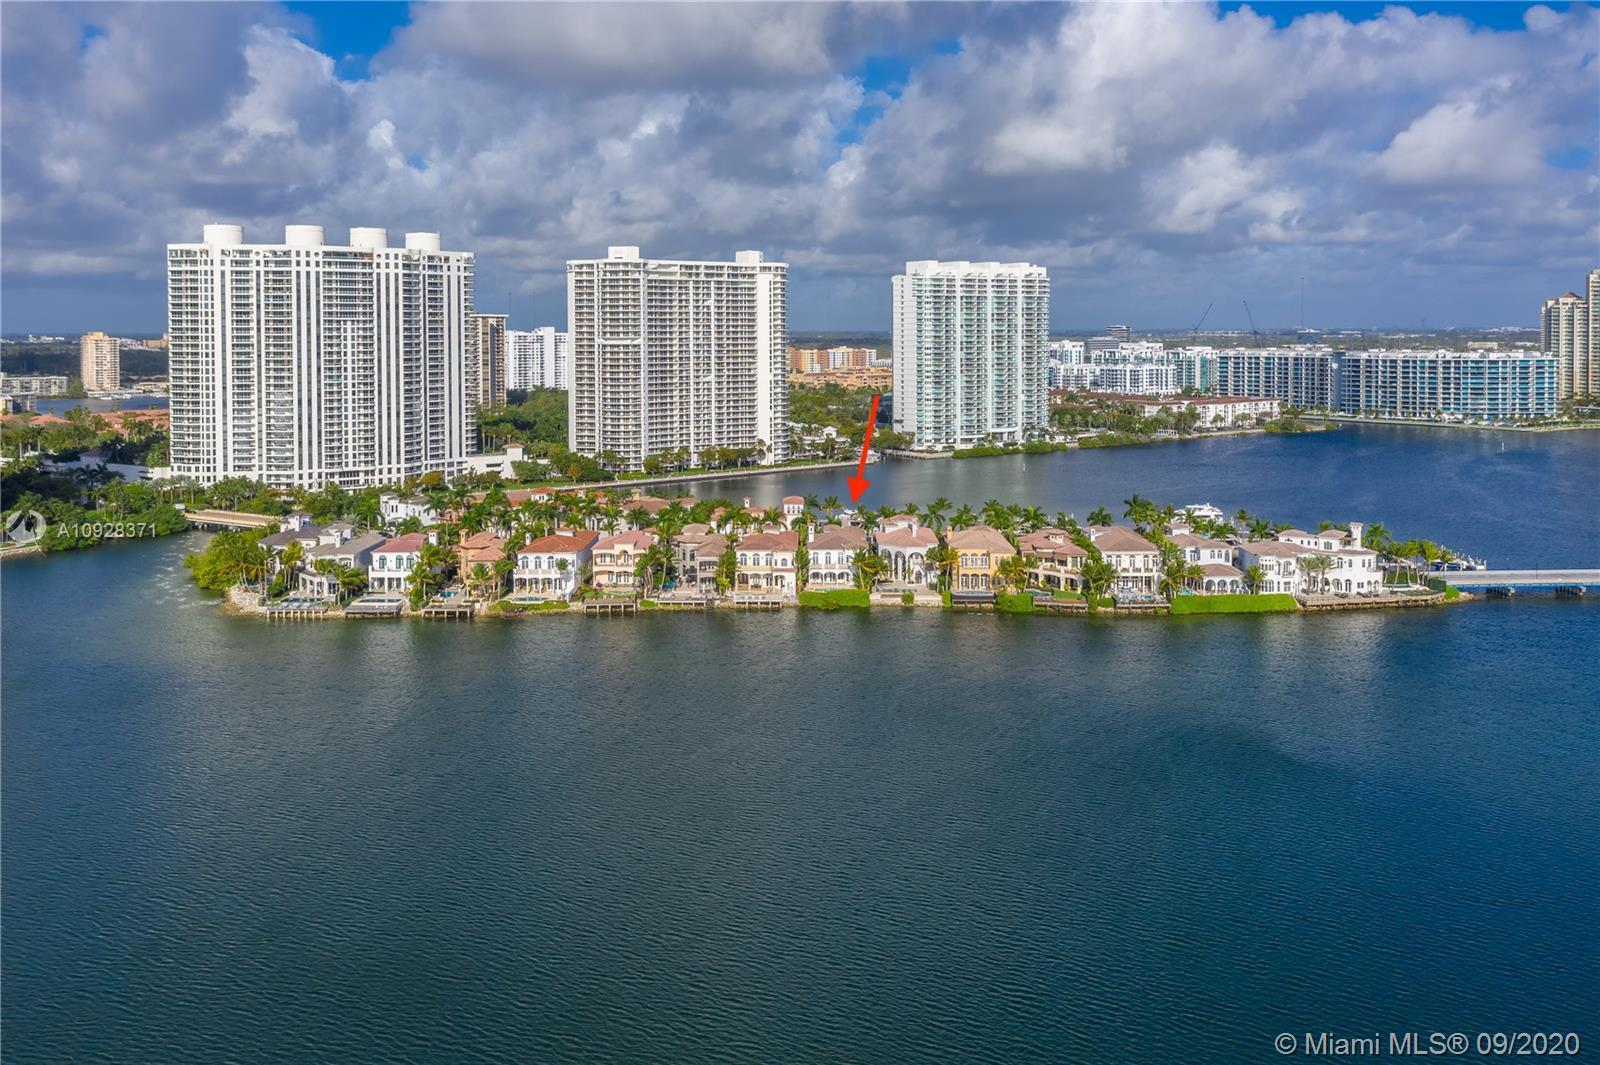 ISLAND ESTATES *** 100 FEET DOCK SPACE AVAILABLE *** HOME COMES WITH A 55' DOCK SPACE **** THIS IS T